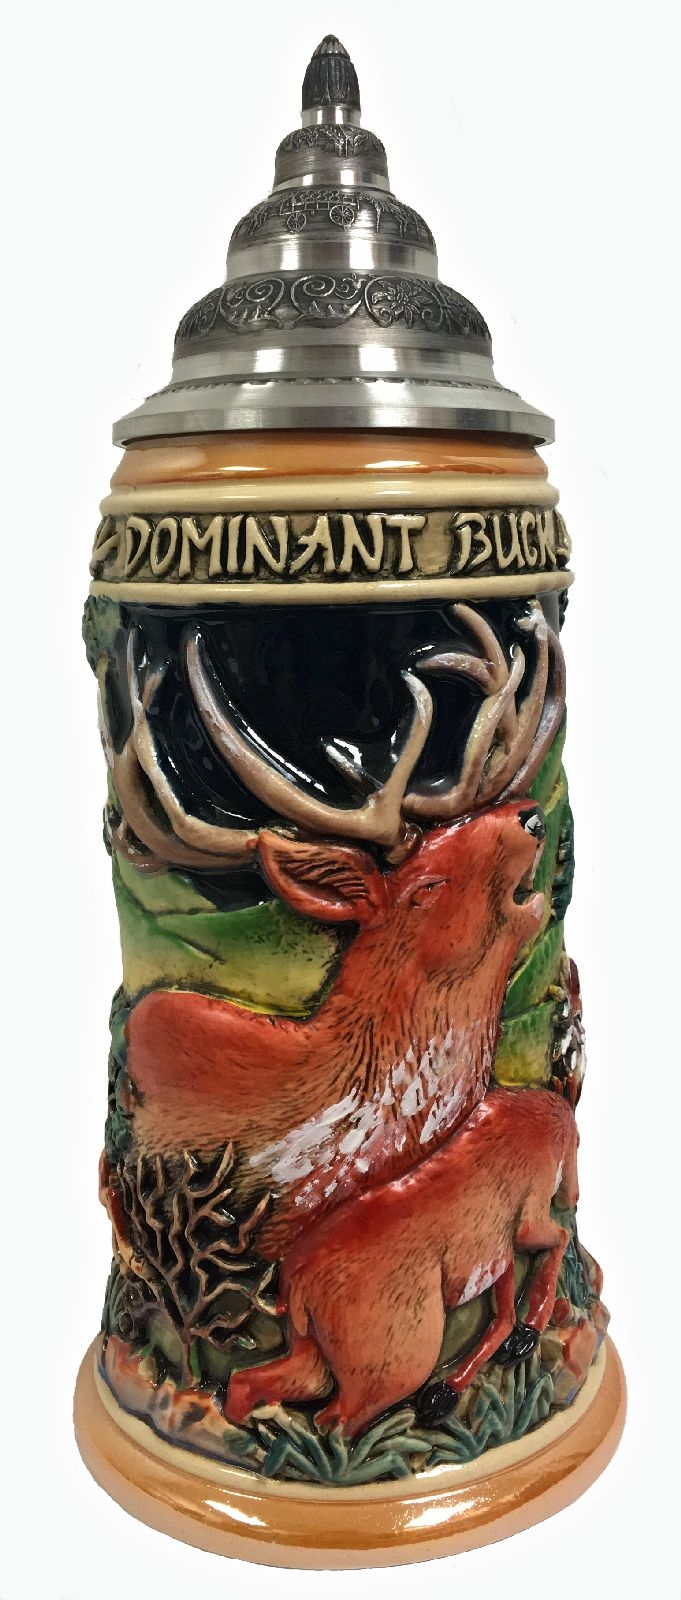 Dominant Buck Deer Relief LE German Stoneware Beer Stein .75 L Made in Germany